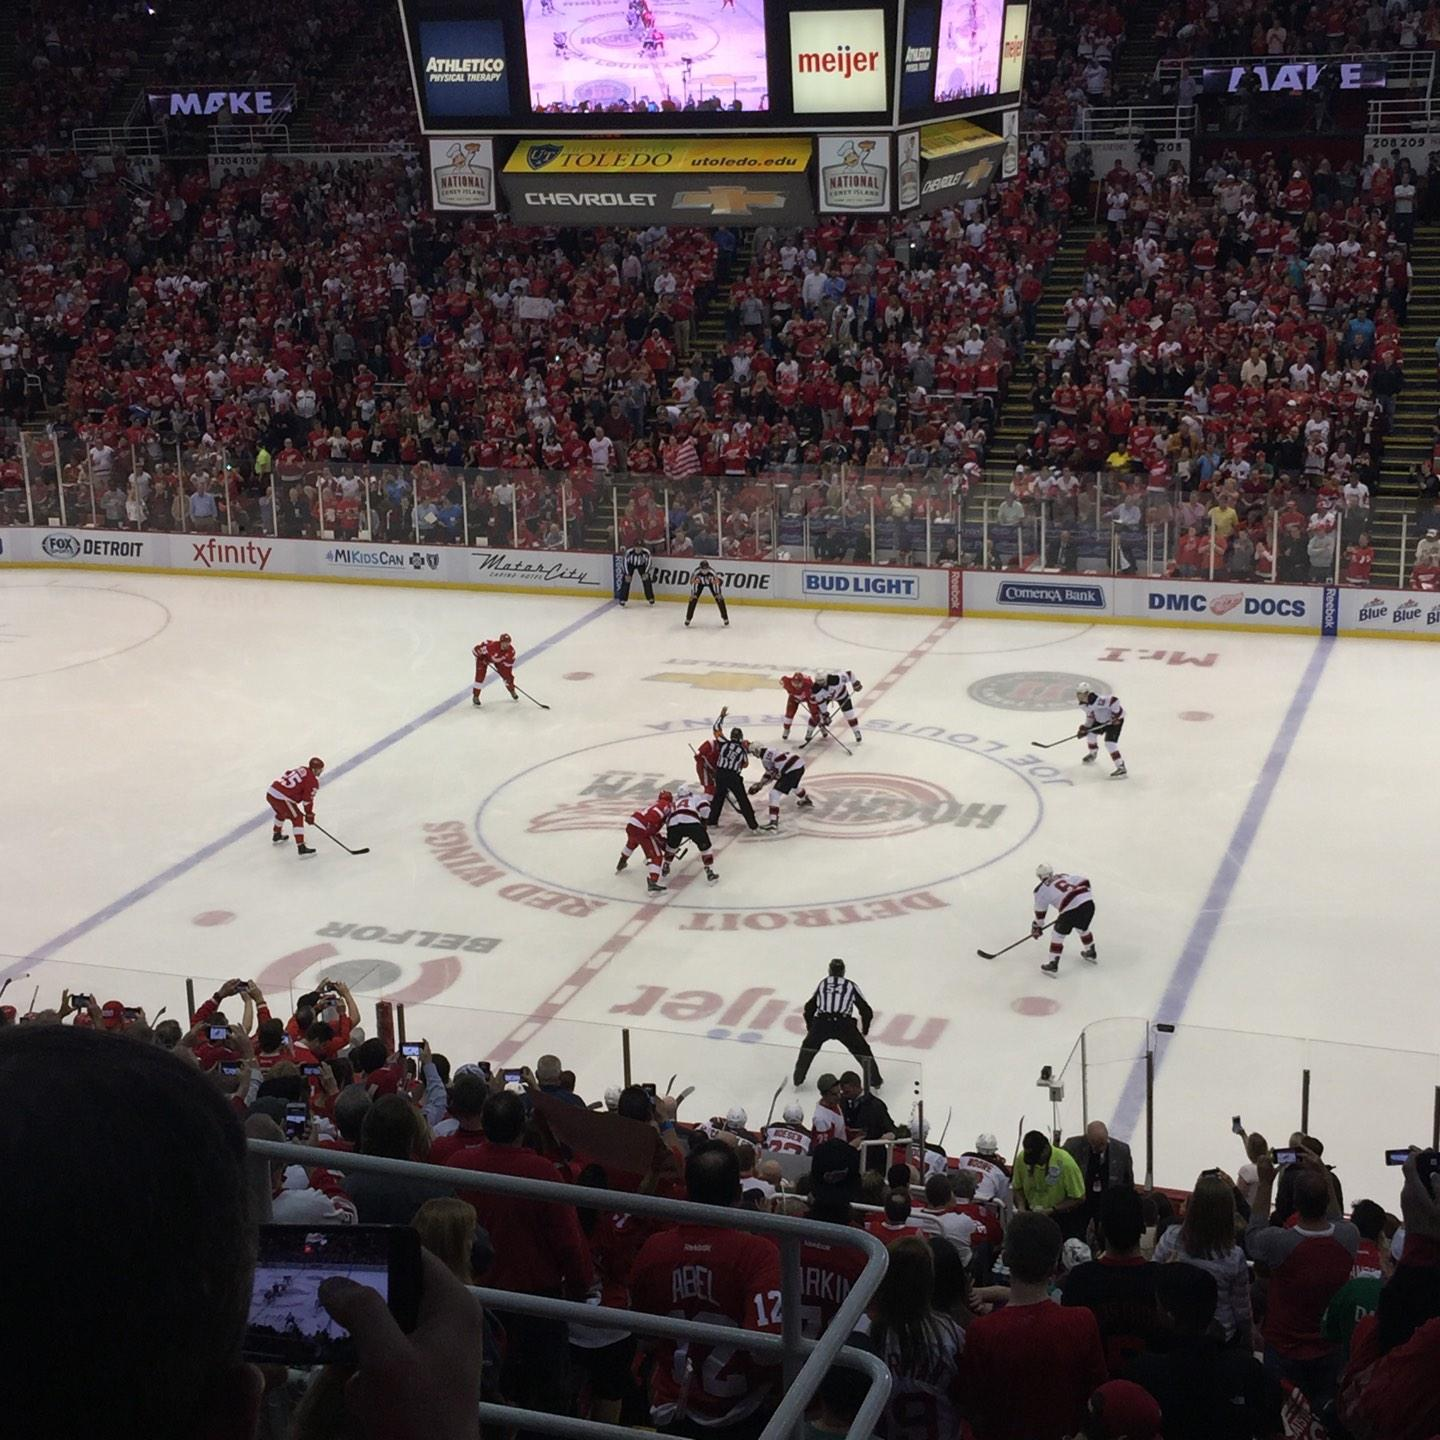 Joe Louis Arena Section 220 Row 6 Seat 10